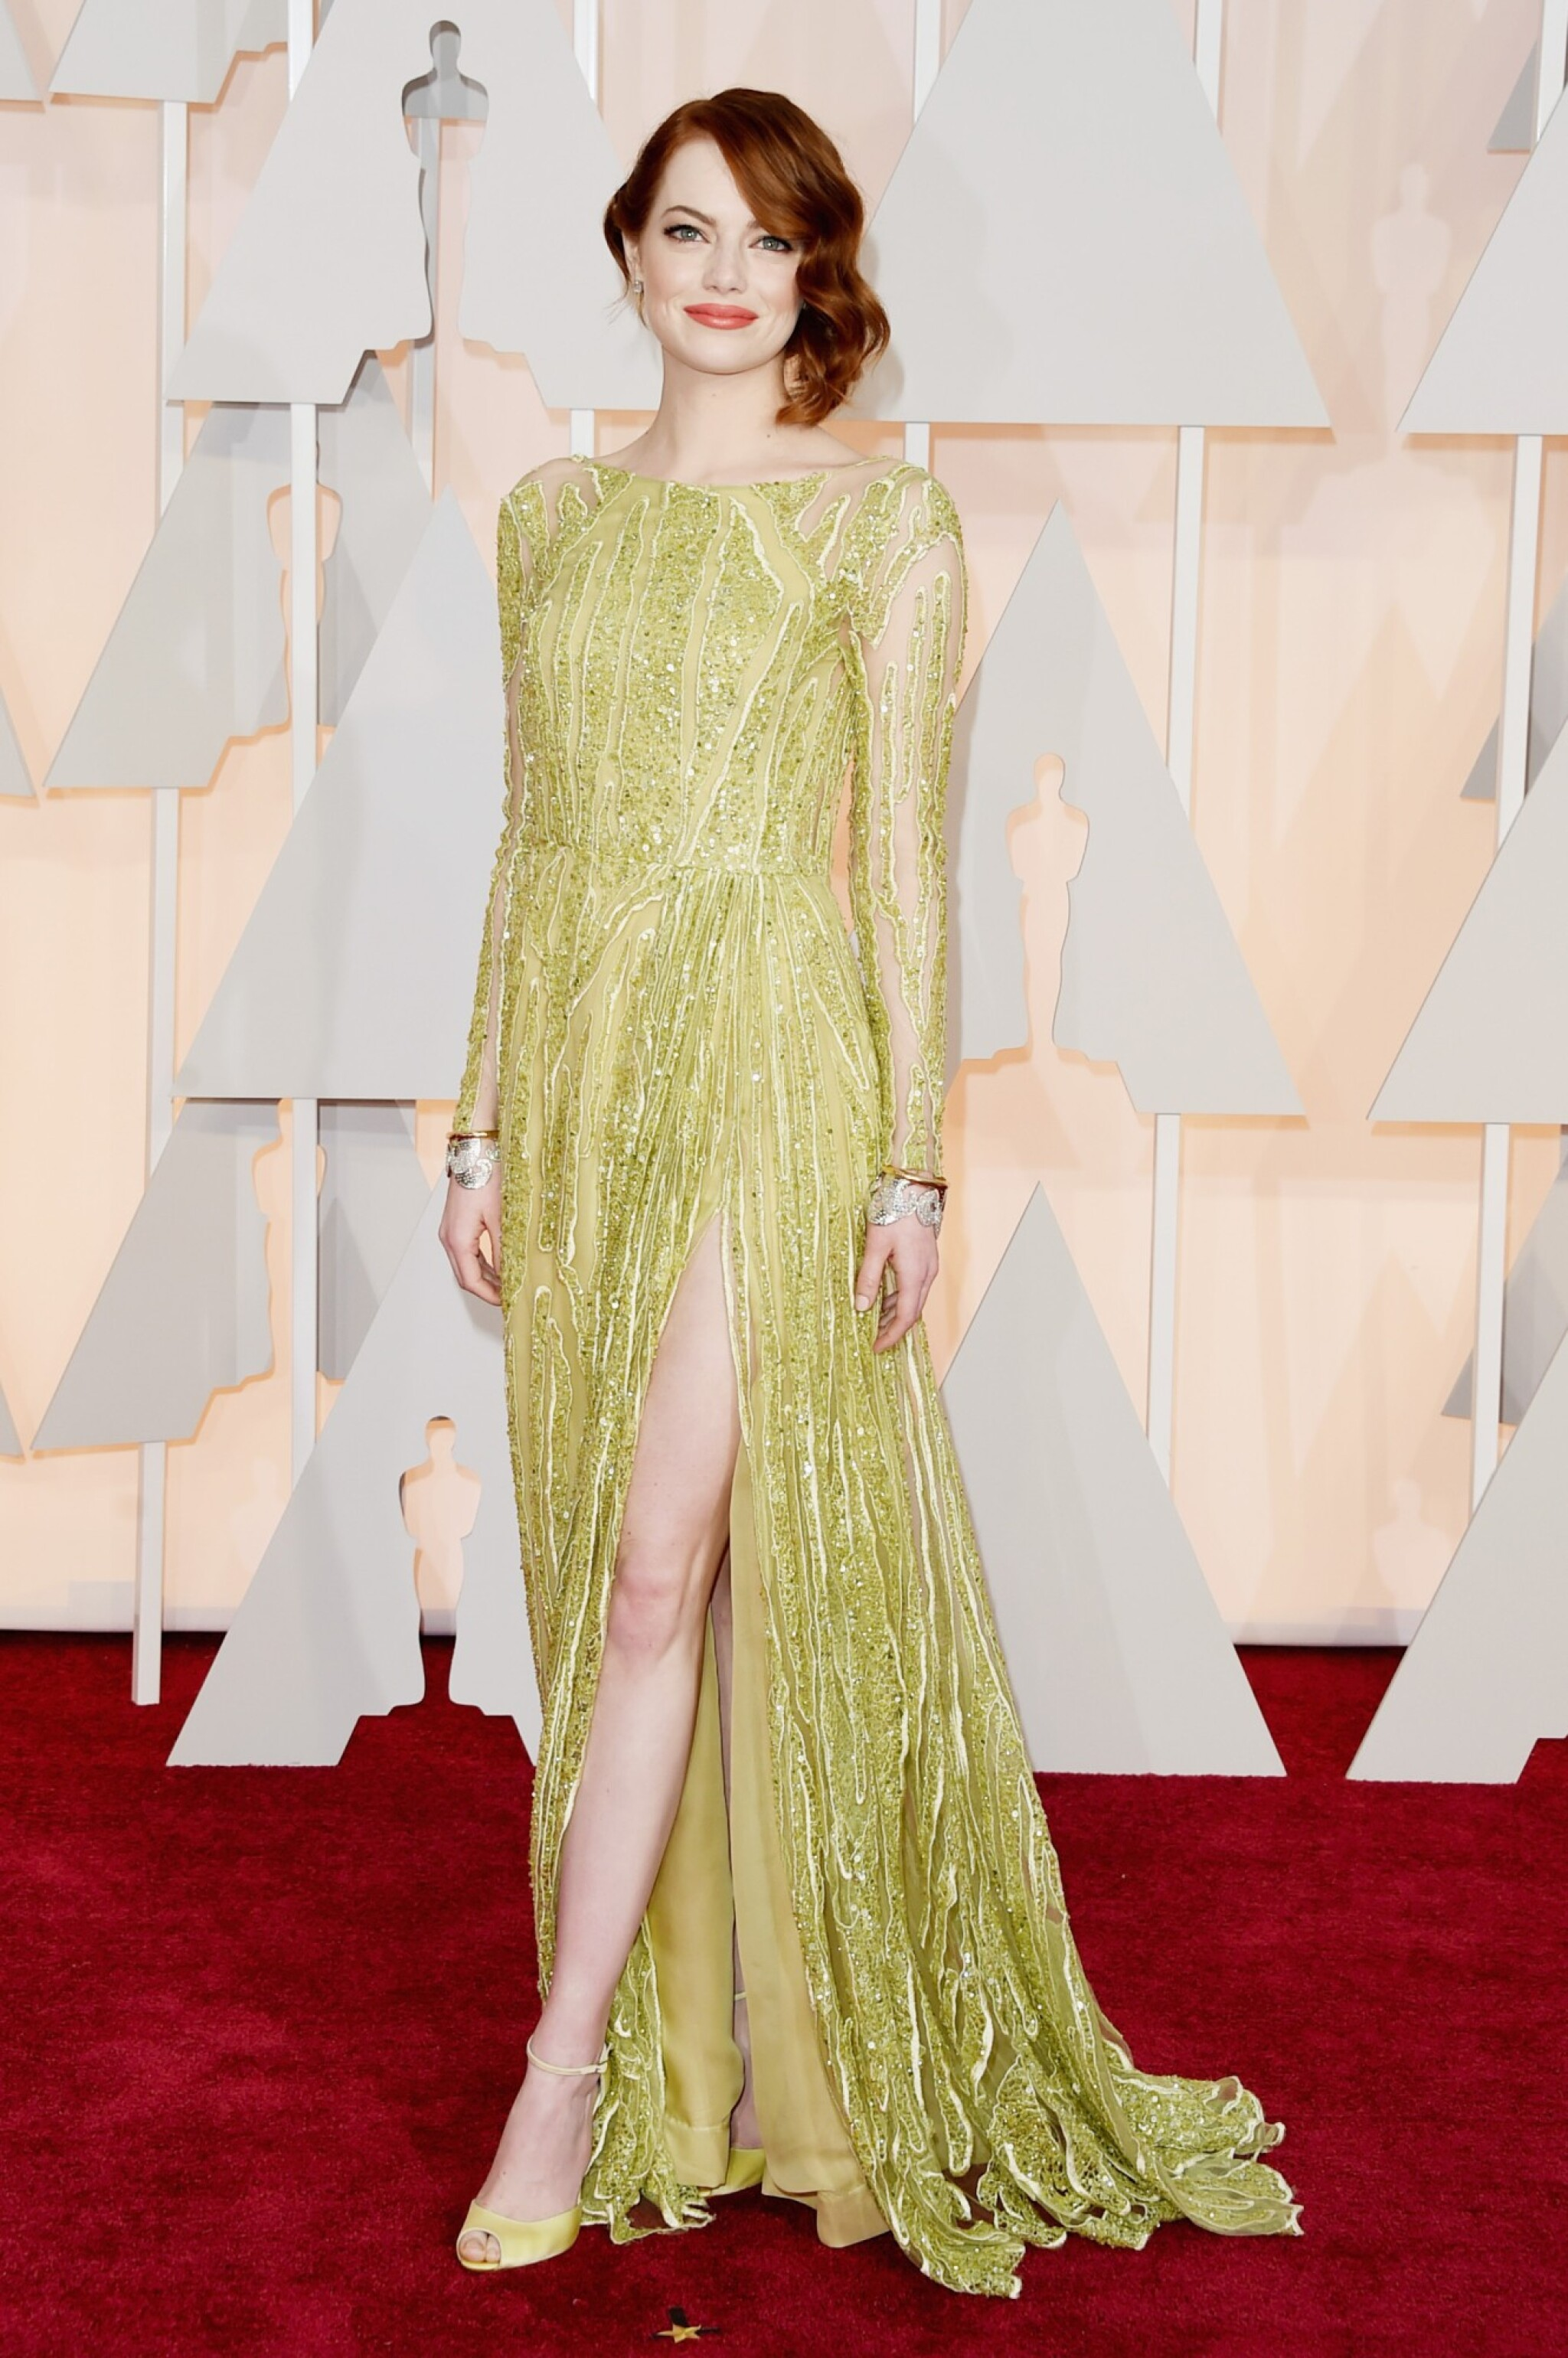 View 1 of Lot 29. Full Length Haute Couture Gown with Thigh High Slit, Long Sleeves, Boat Neckline and a Burst of Sequins Cascading Down the Gown. In 'Apple' colour. Worn by Emma Stone at the 87th Academy Awards, 2015.